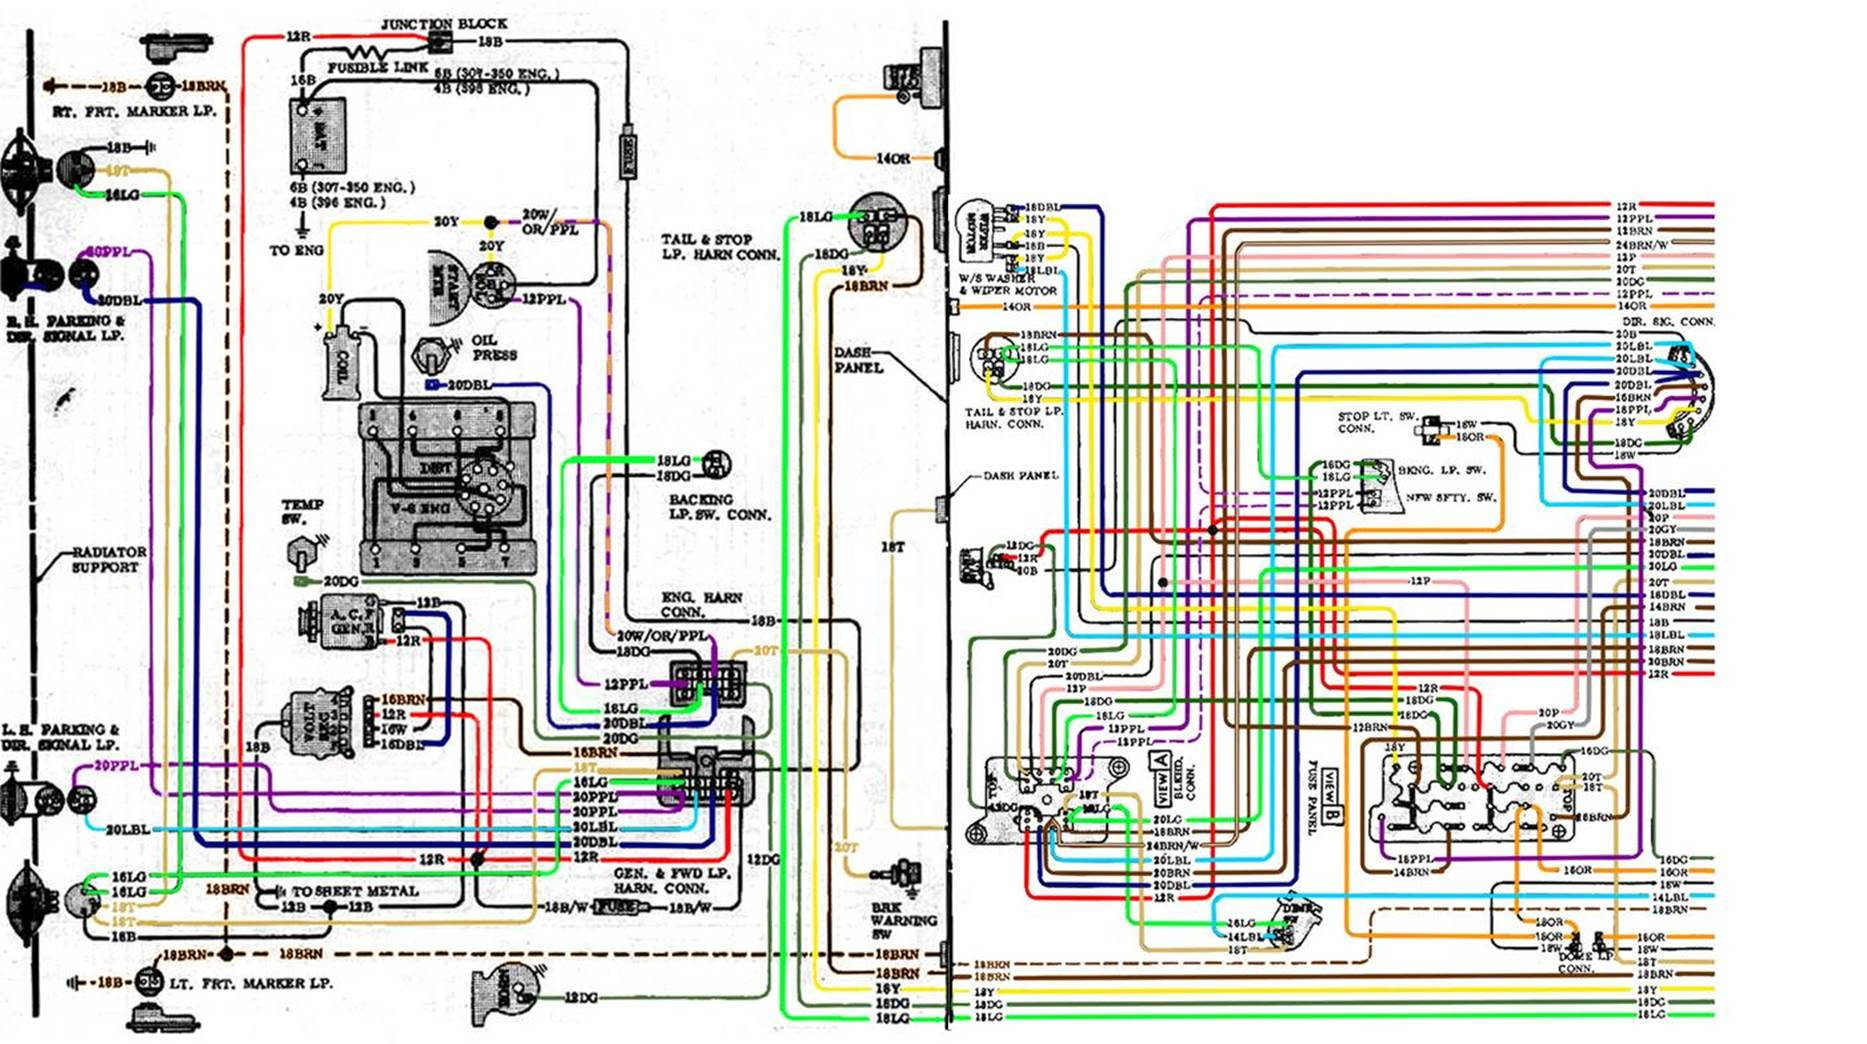 image002 67 72 chevy wiring diagram 1968 nova wiring harness at suagrazia.org